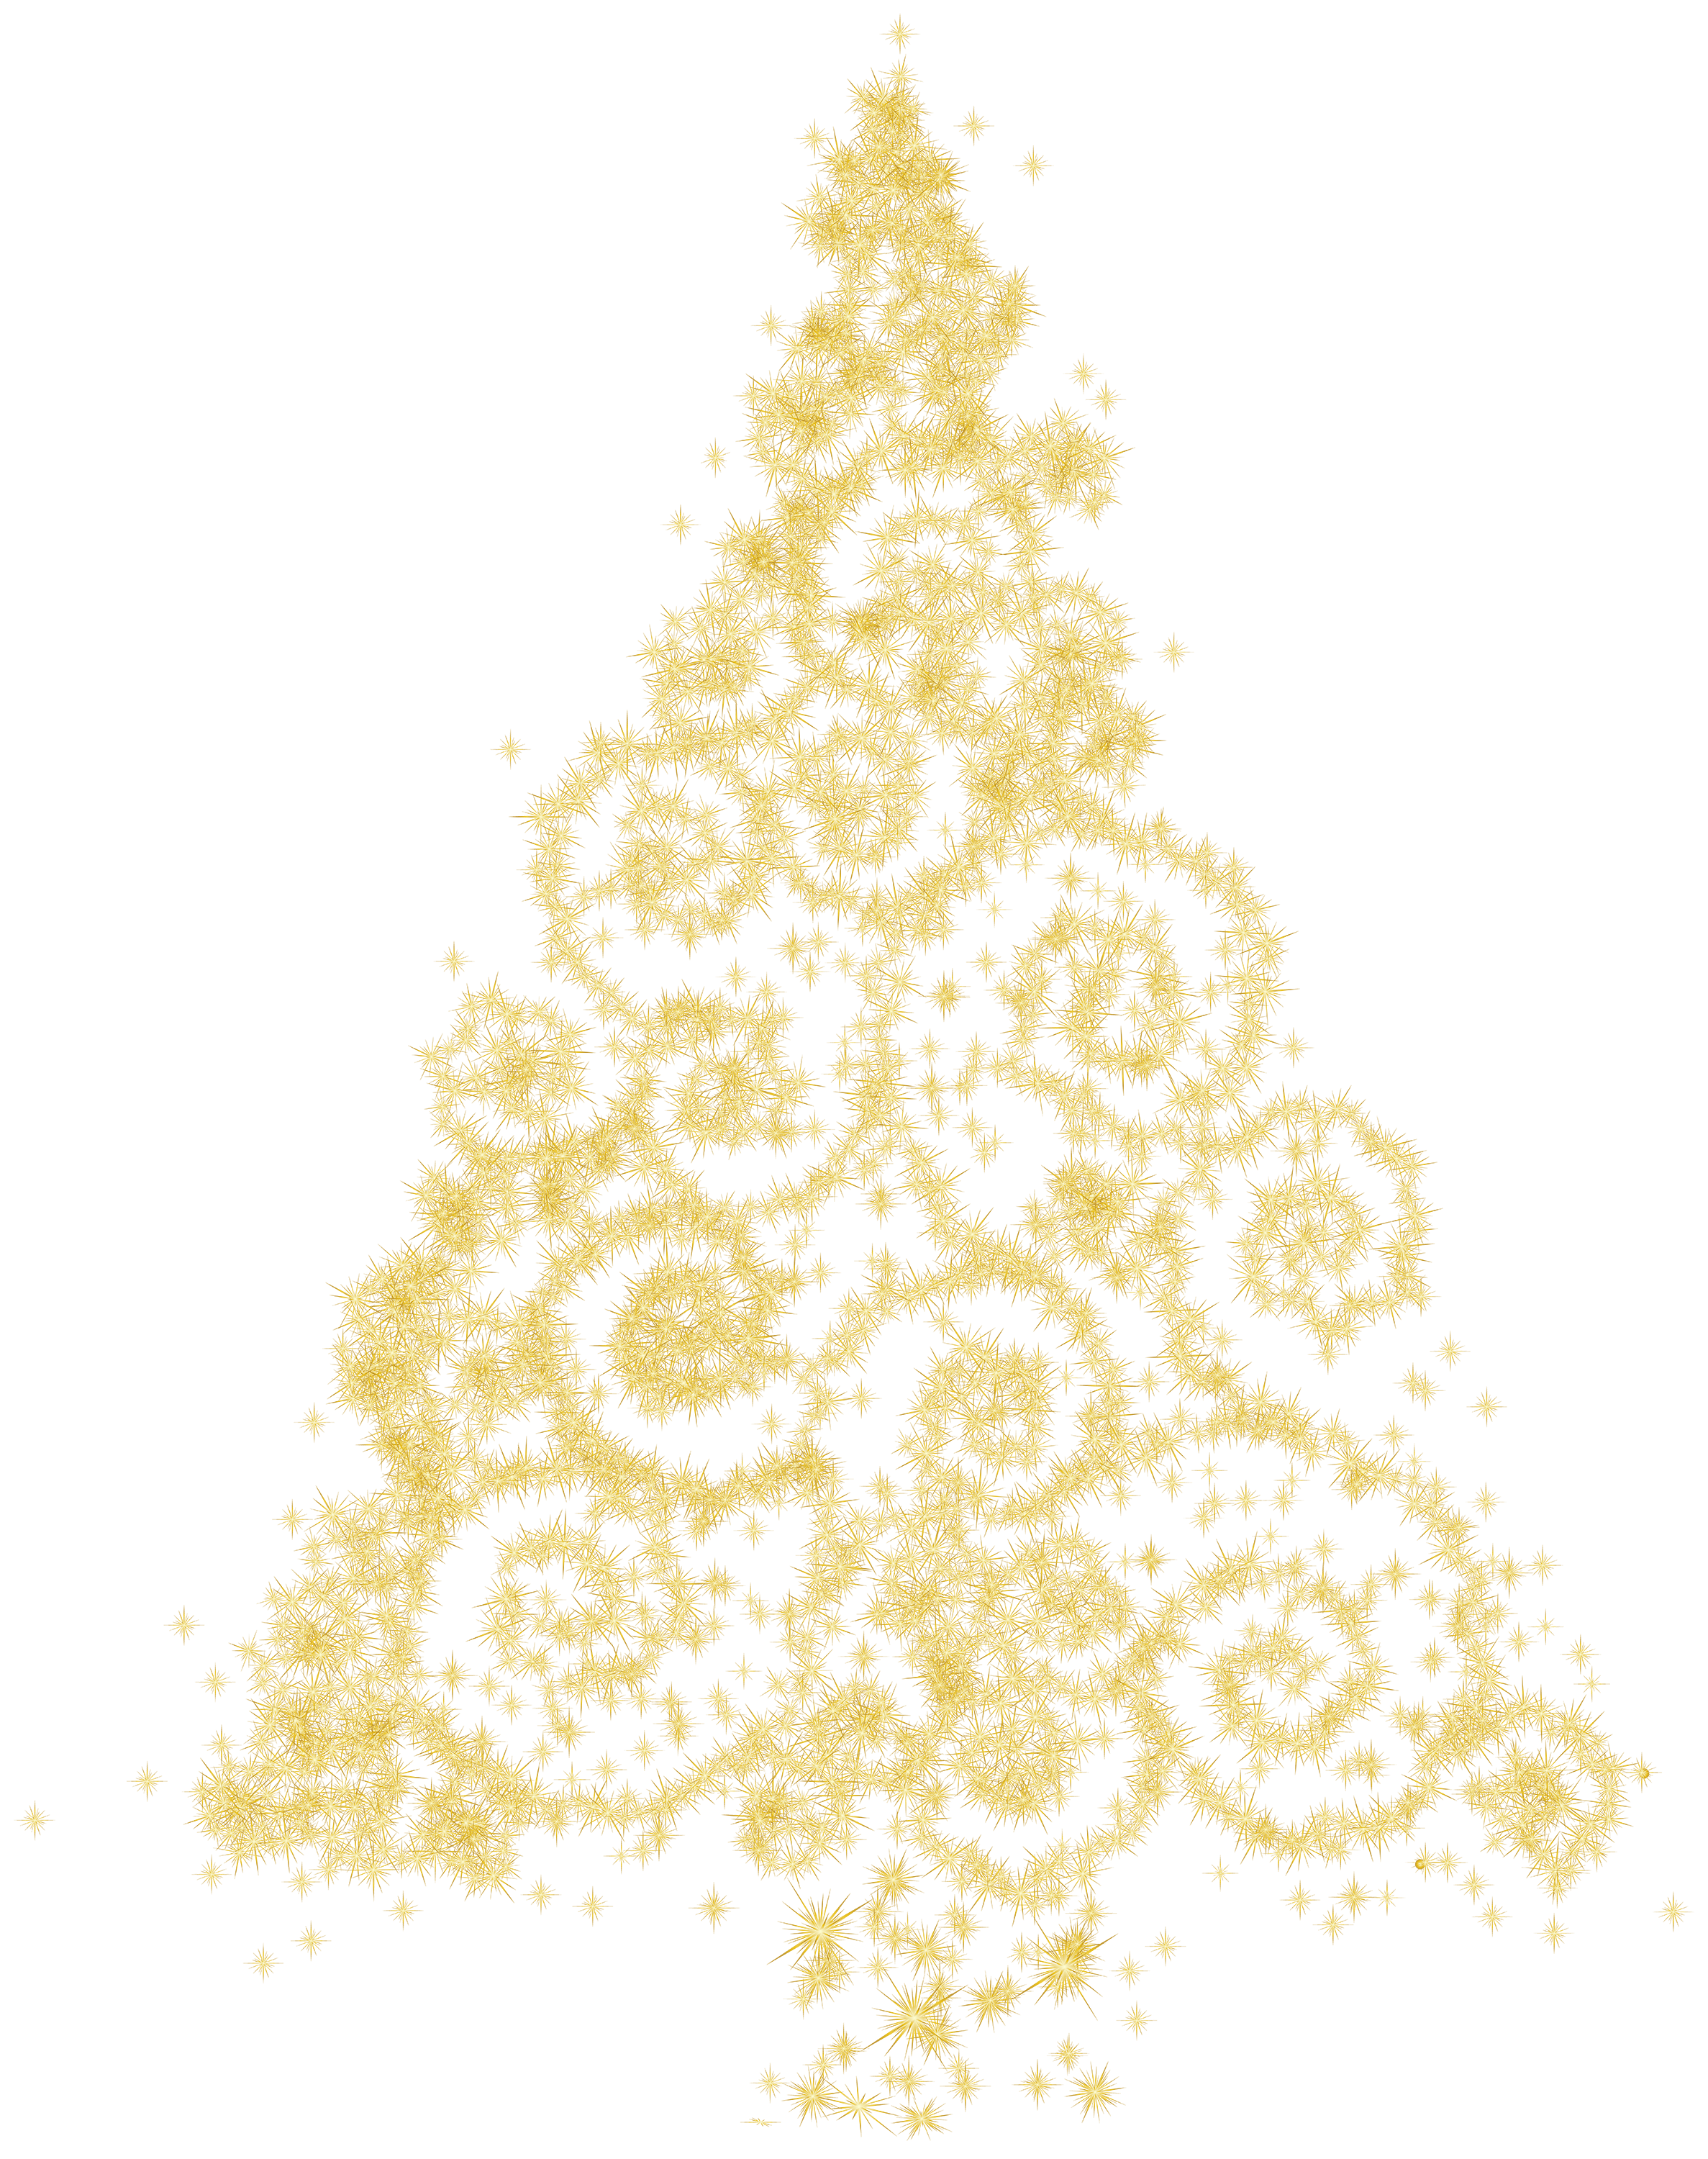 Gold christmas tree png. Clipart trees abstract